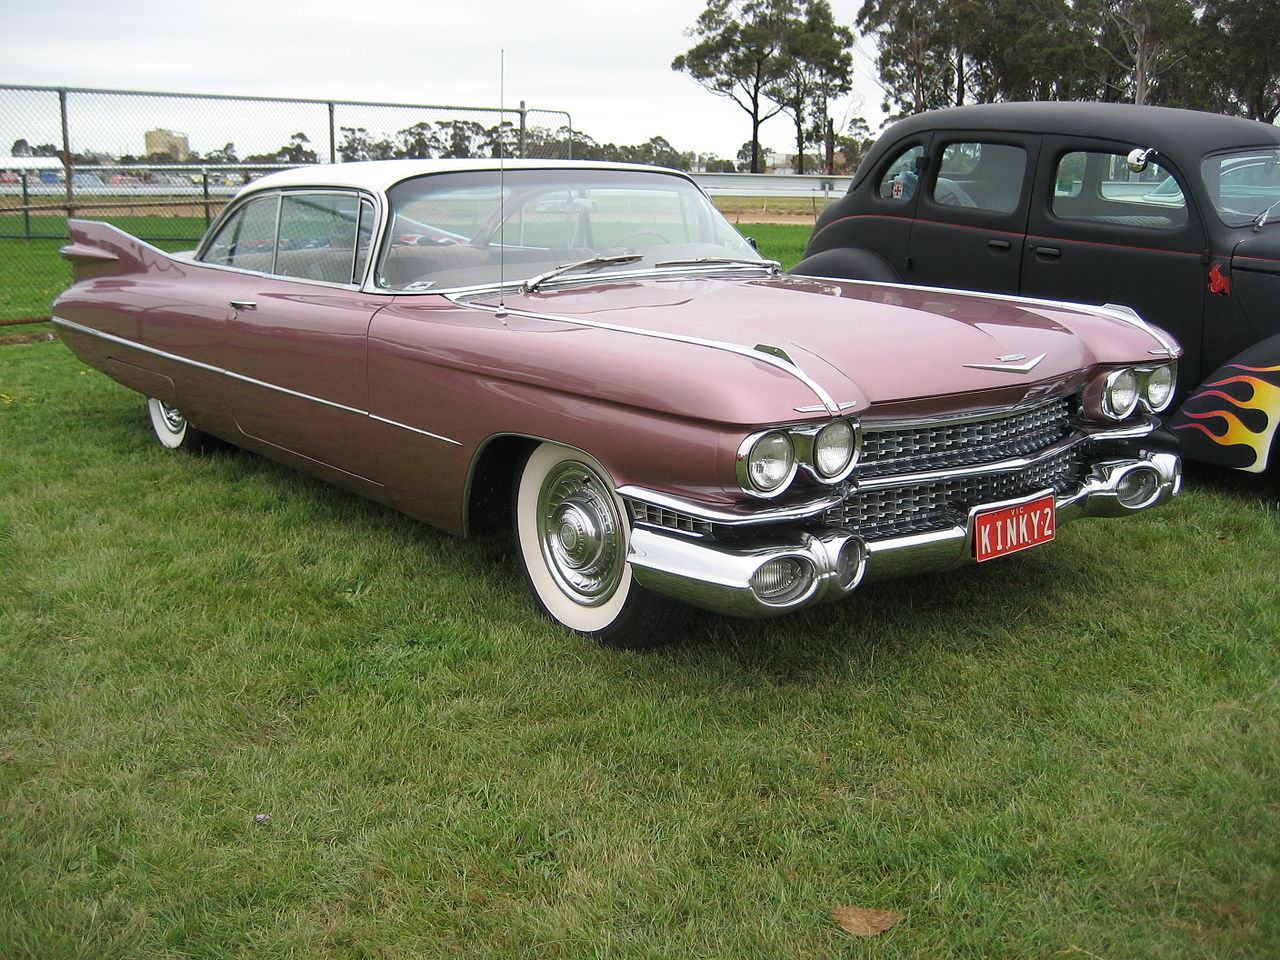 file 1959 cadillac coupe wikimedia commons. Black Bedroom Furniture Sets. Home Design Ideas